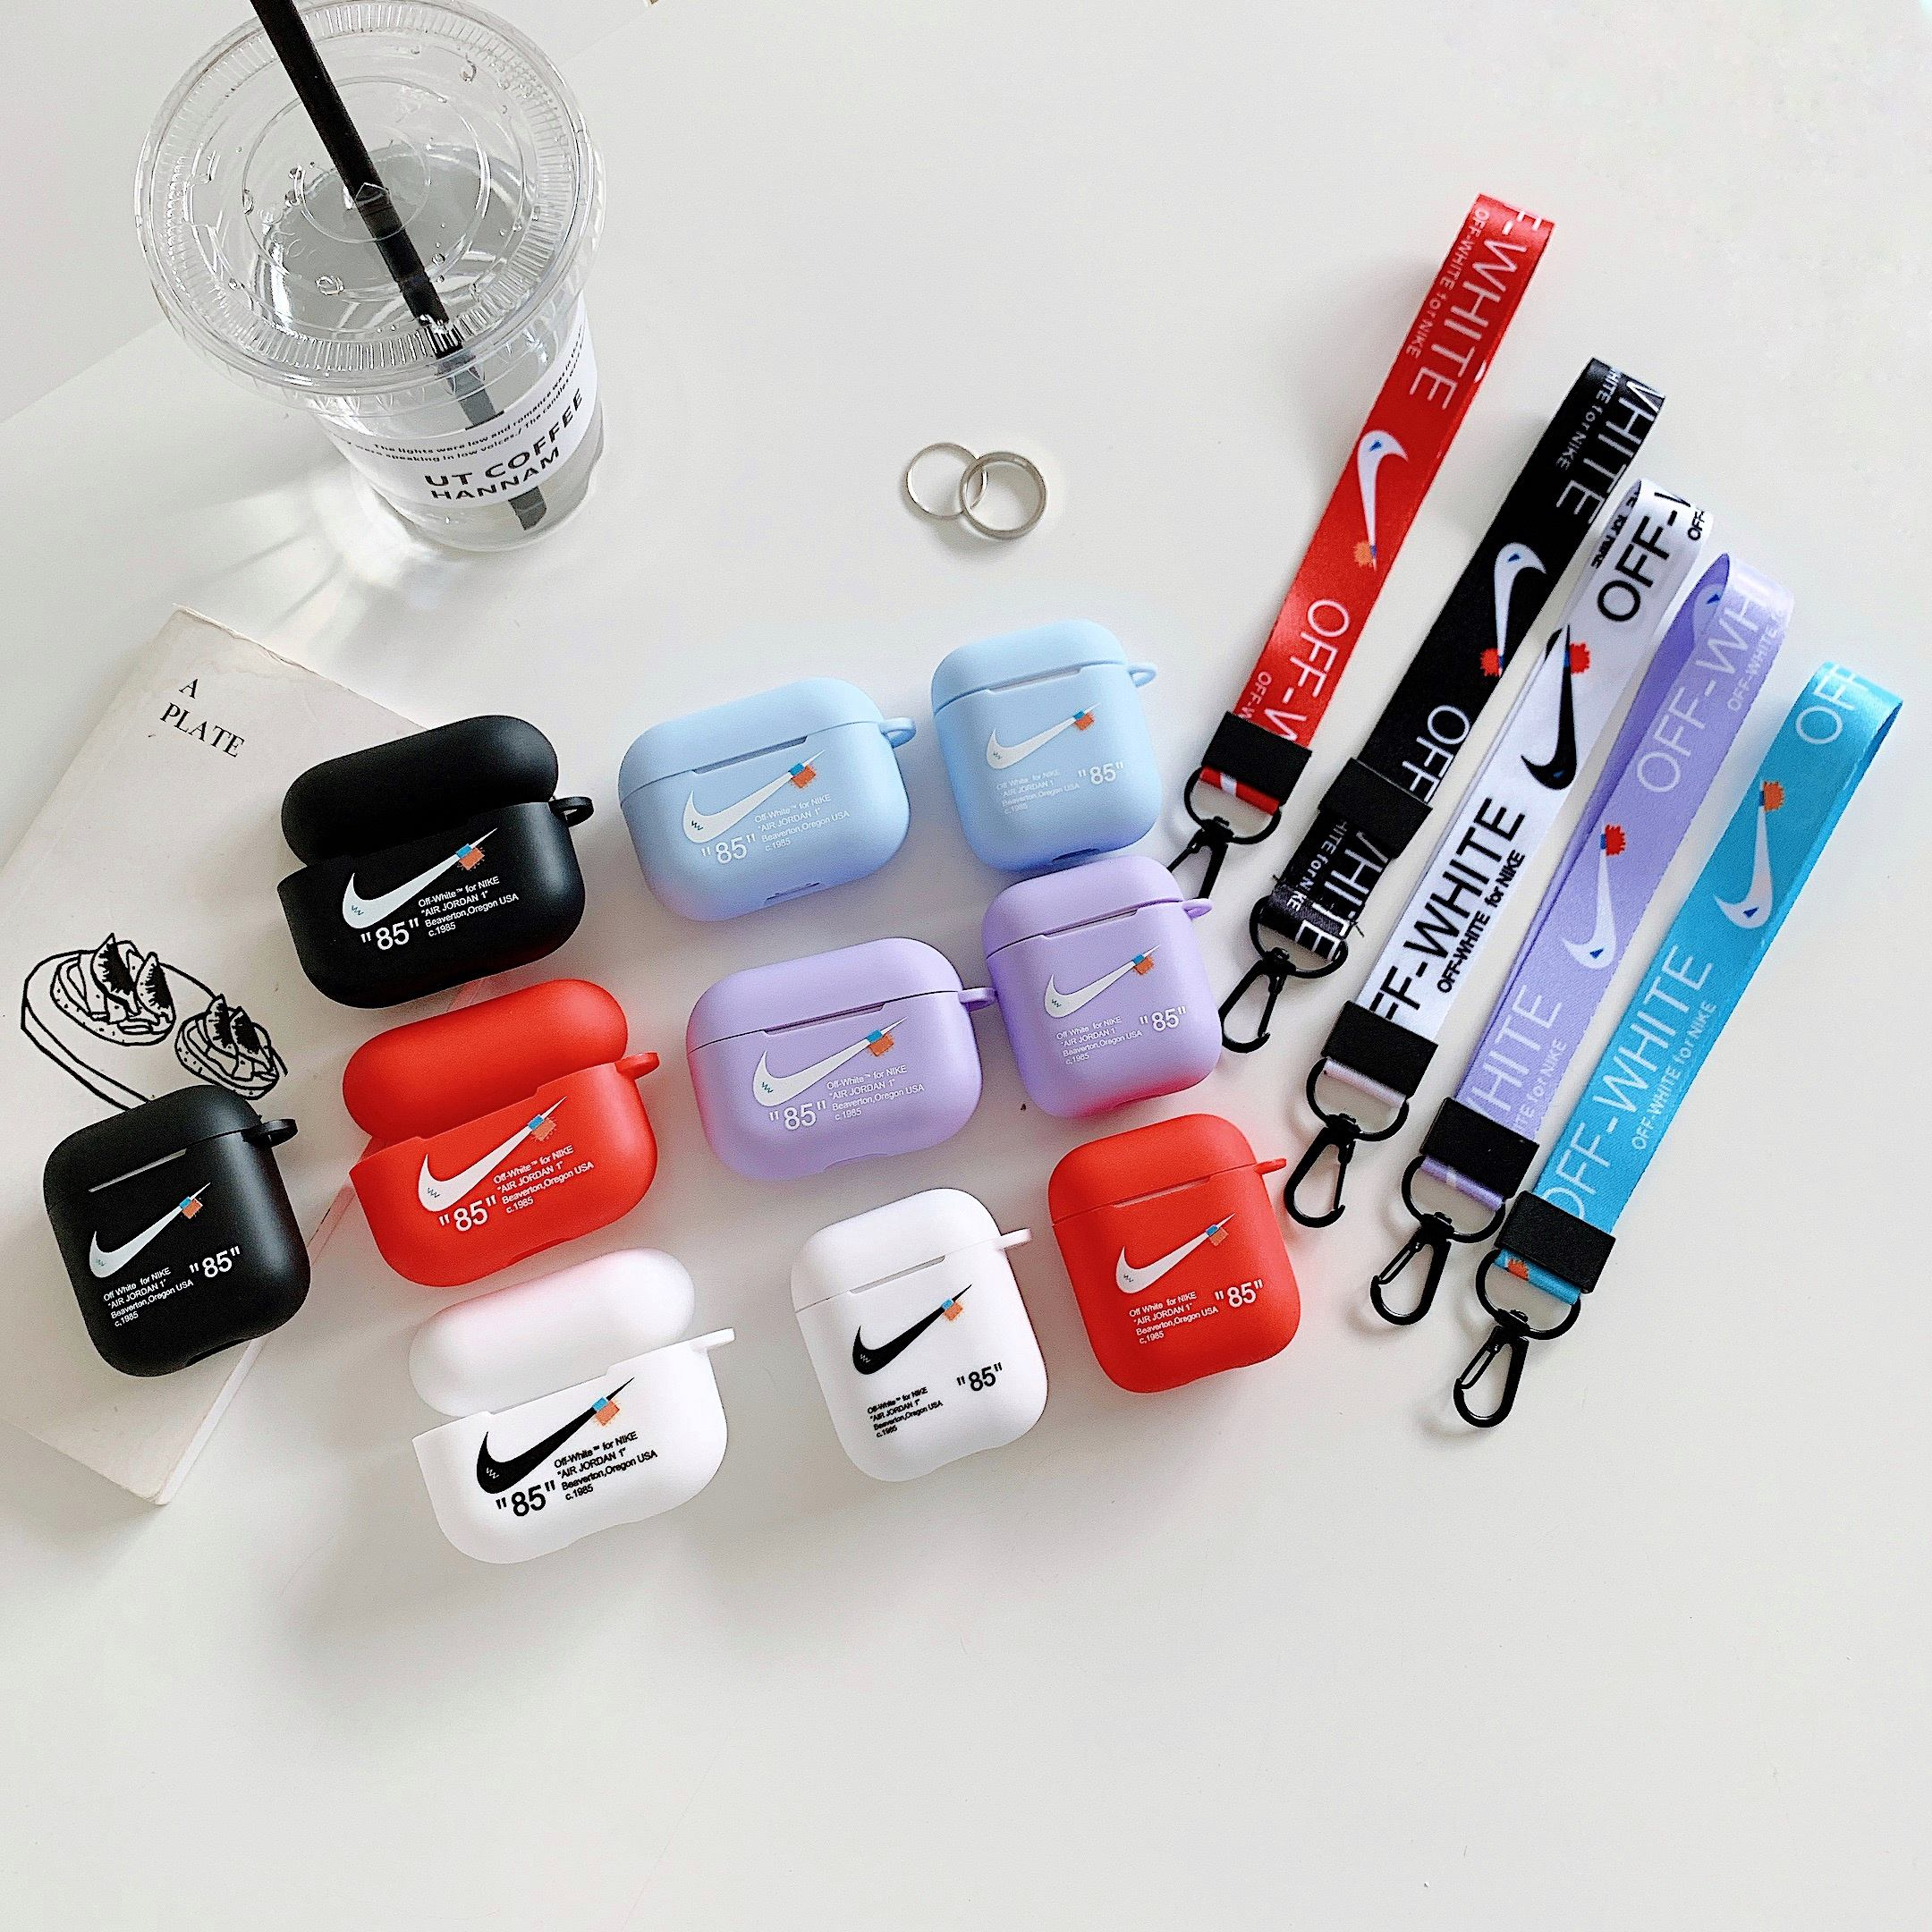 Airpod cases Luxury black white Earphones clear Cover nike transparent jordan tpu soft for apple Airpods Case